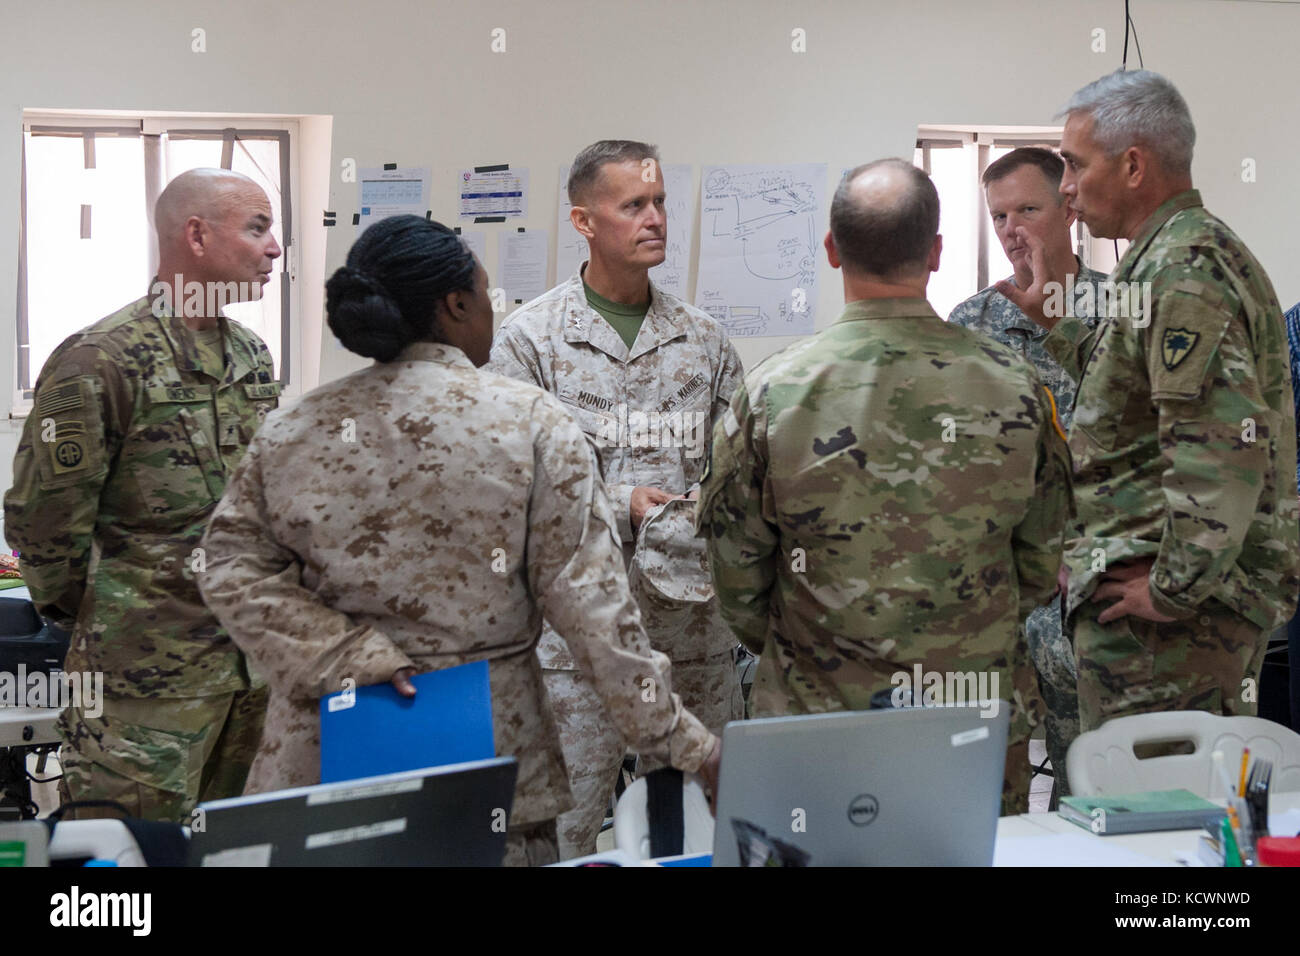 U.S. Army Lt. Col. Jamie Fowler, South Carolina Army National Guard, 122nd Engineer Battalion commander, discusses Stock Photo